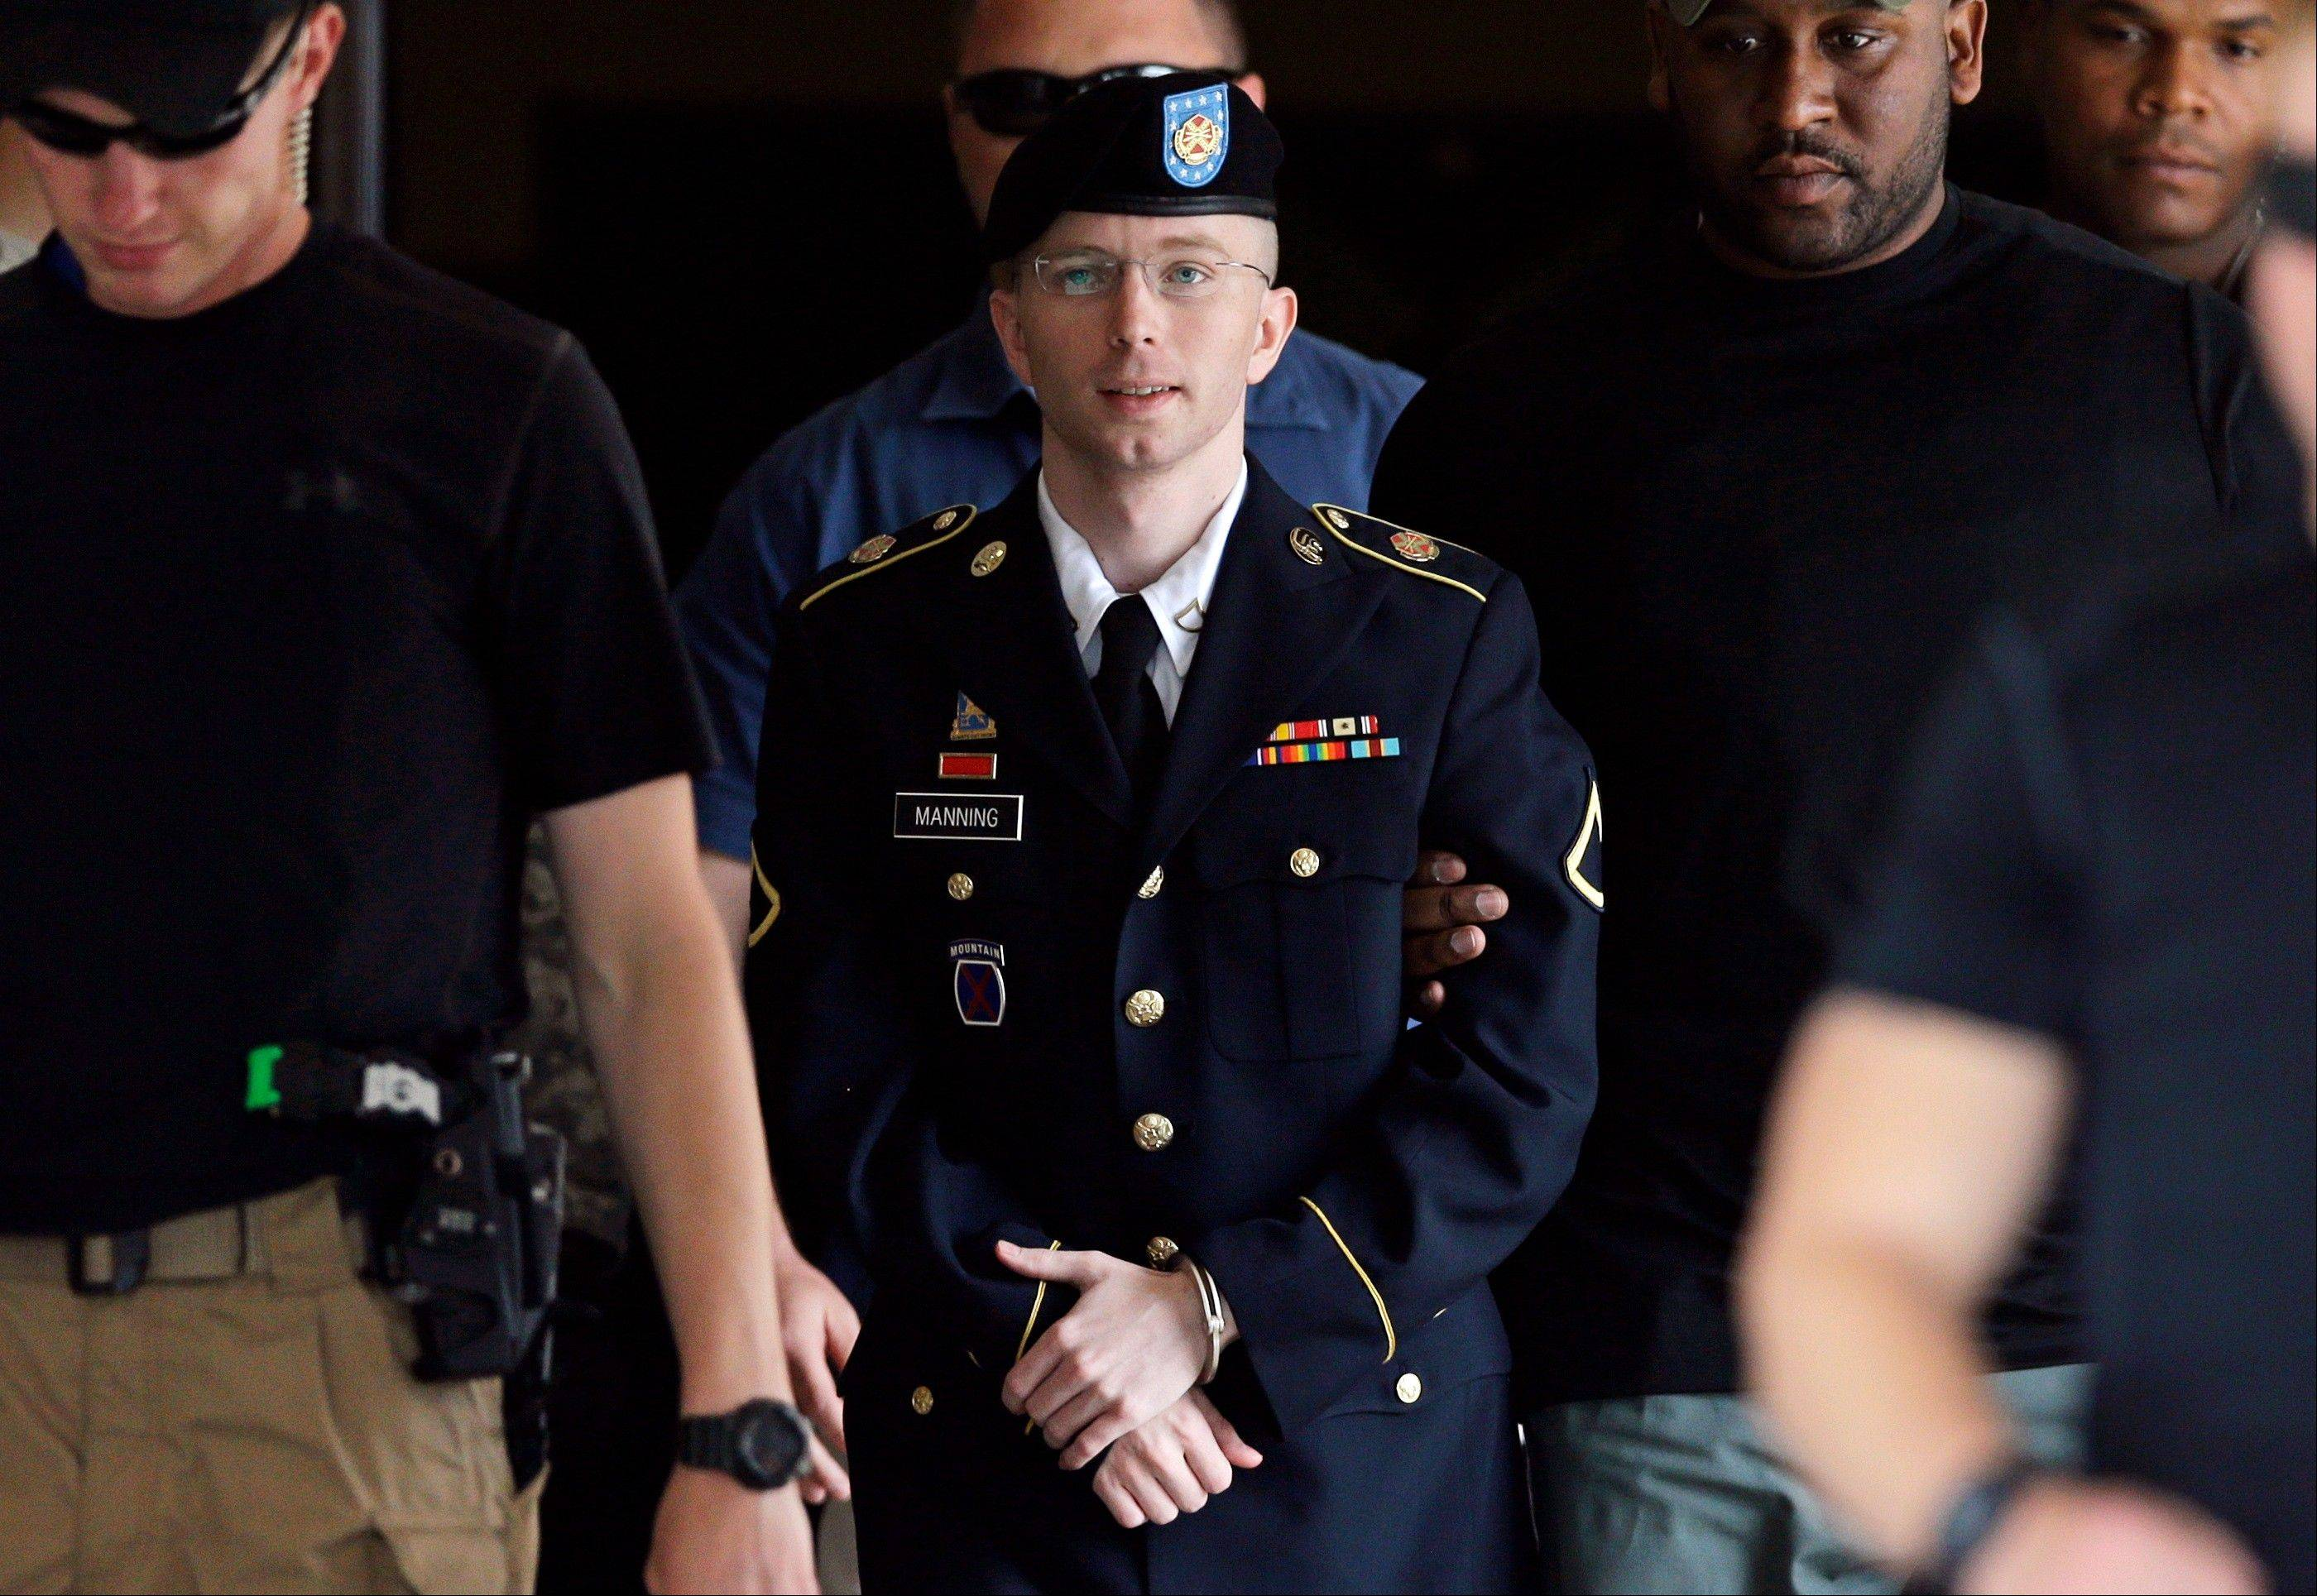 Soldier Bradley Manning is escorted out of a courthouse on July 30 in Fort Meade, Md.